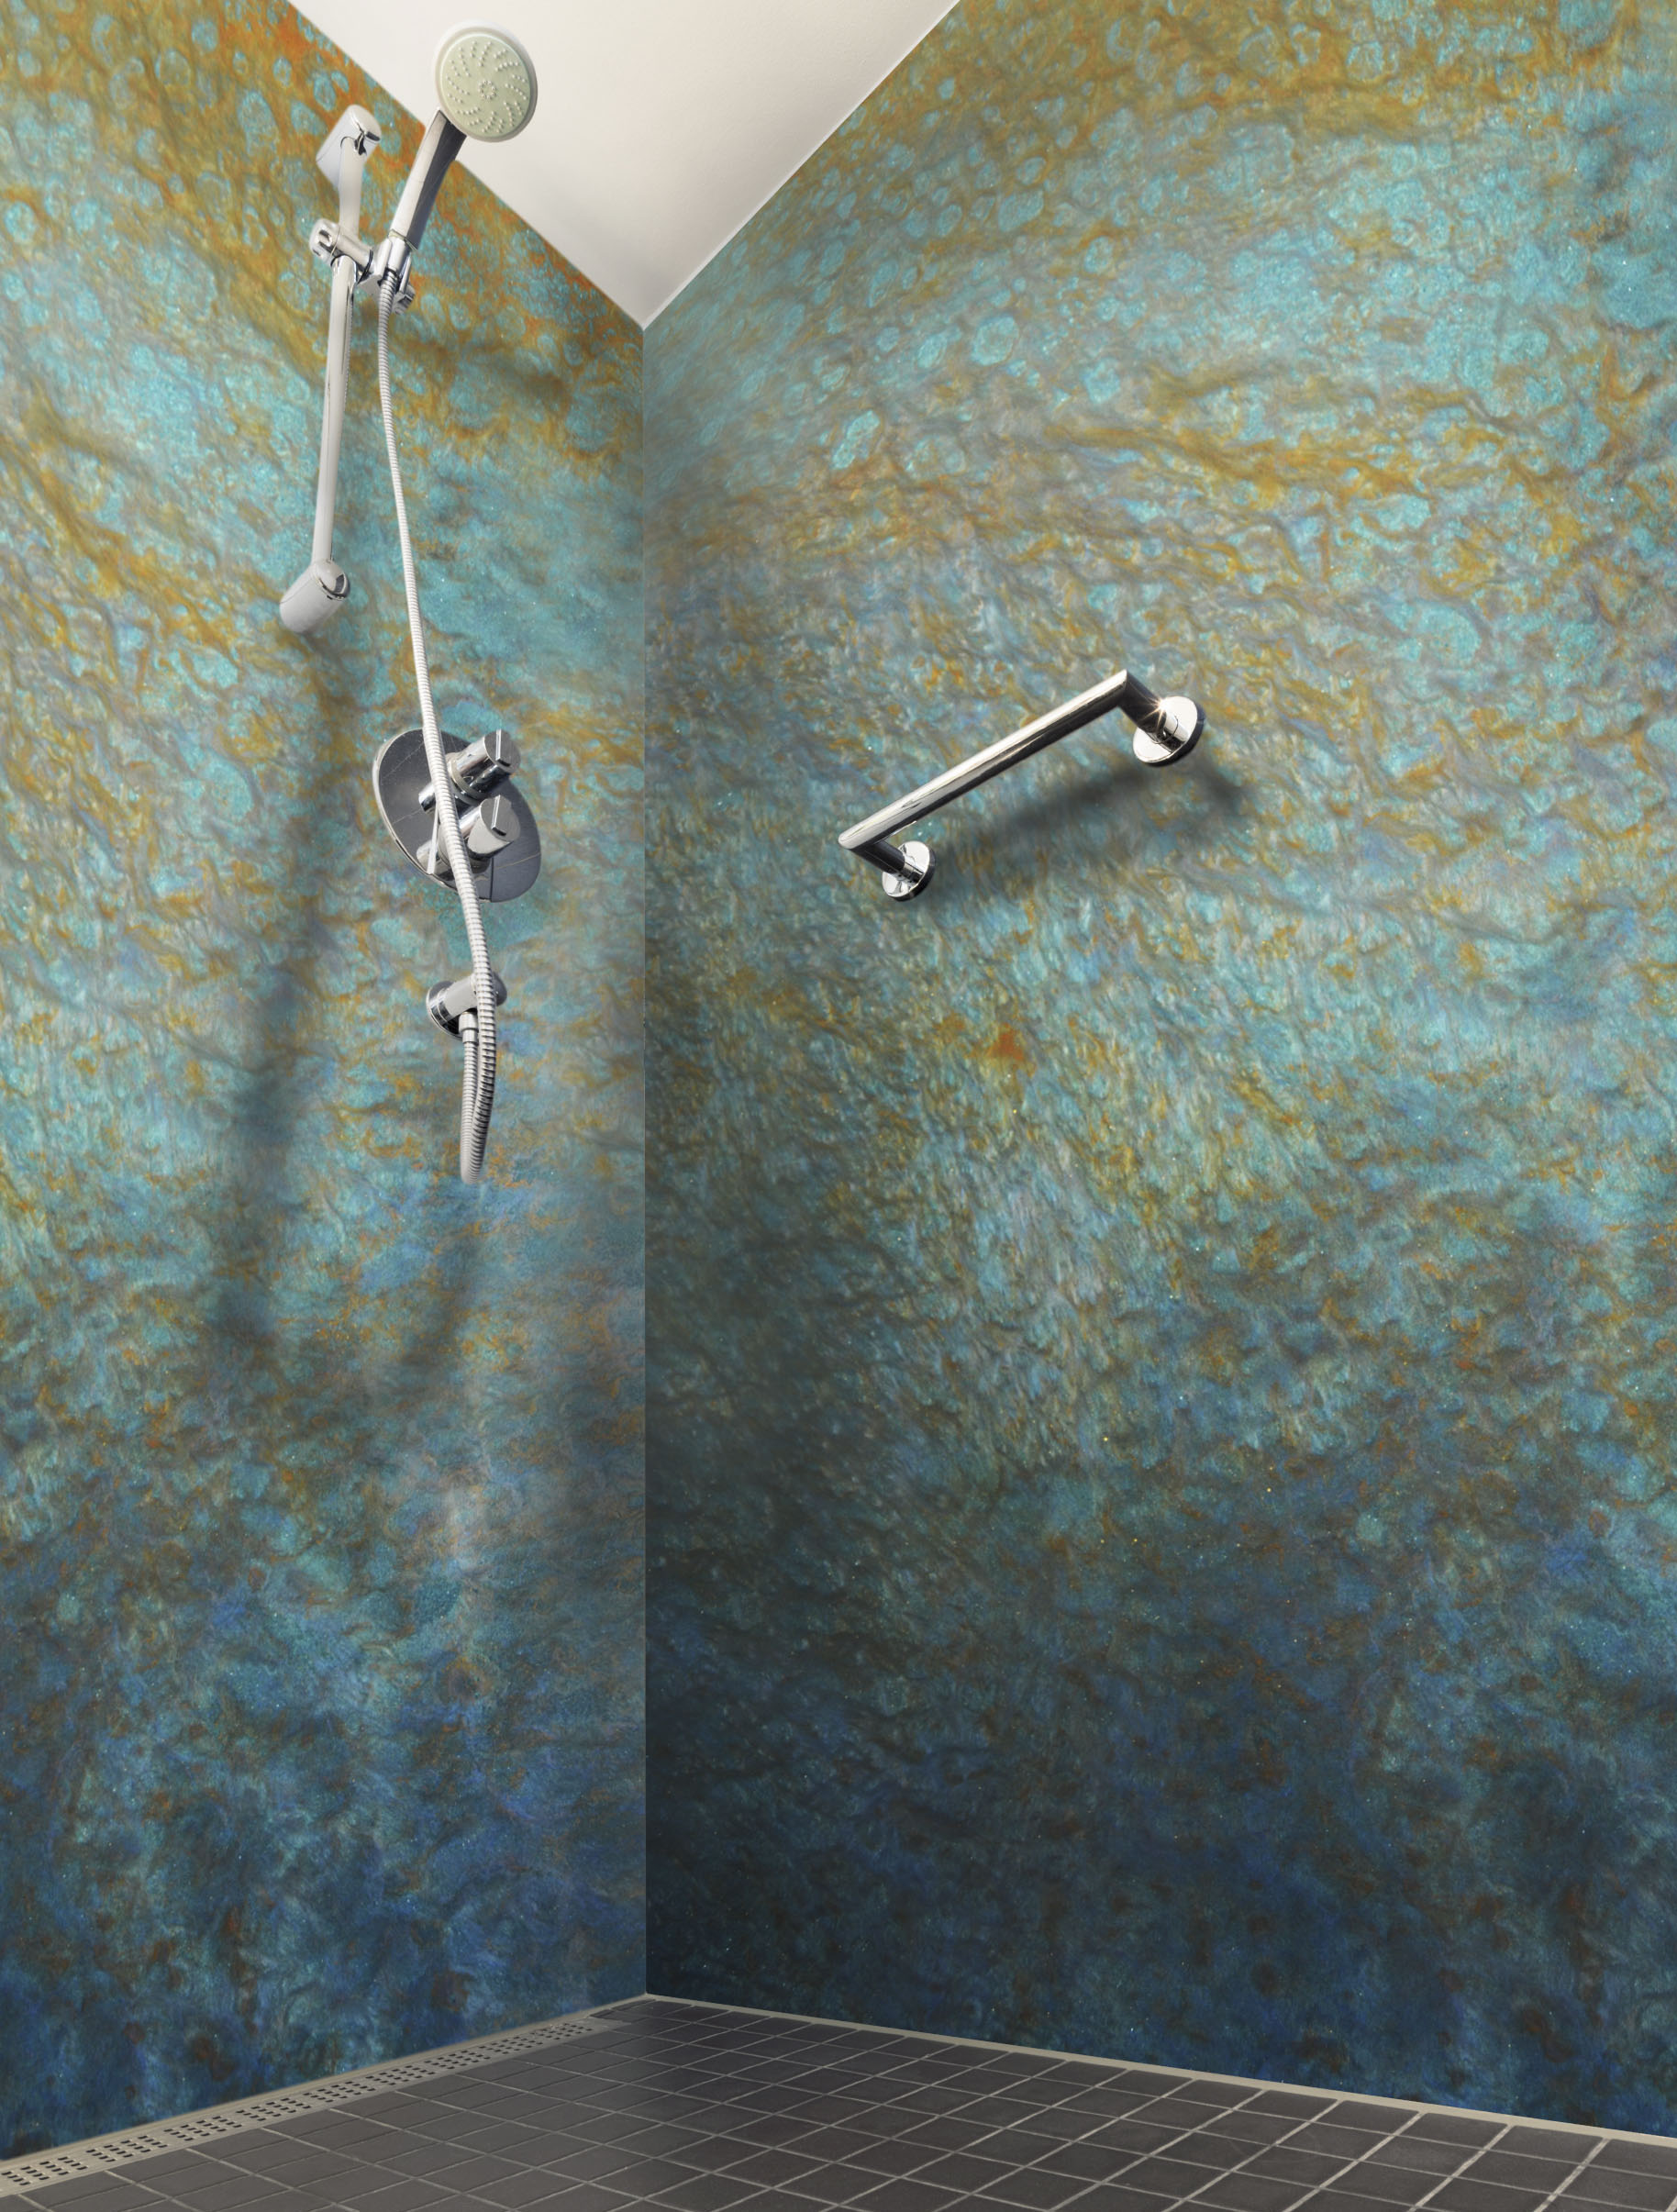 Epoxy Shower Grout : Shower walls built from epoxy poured over panels